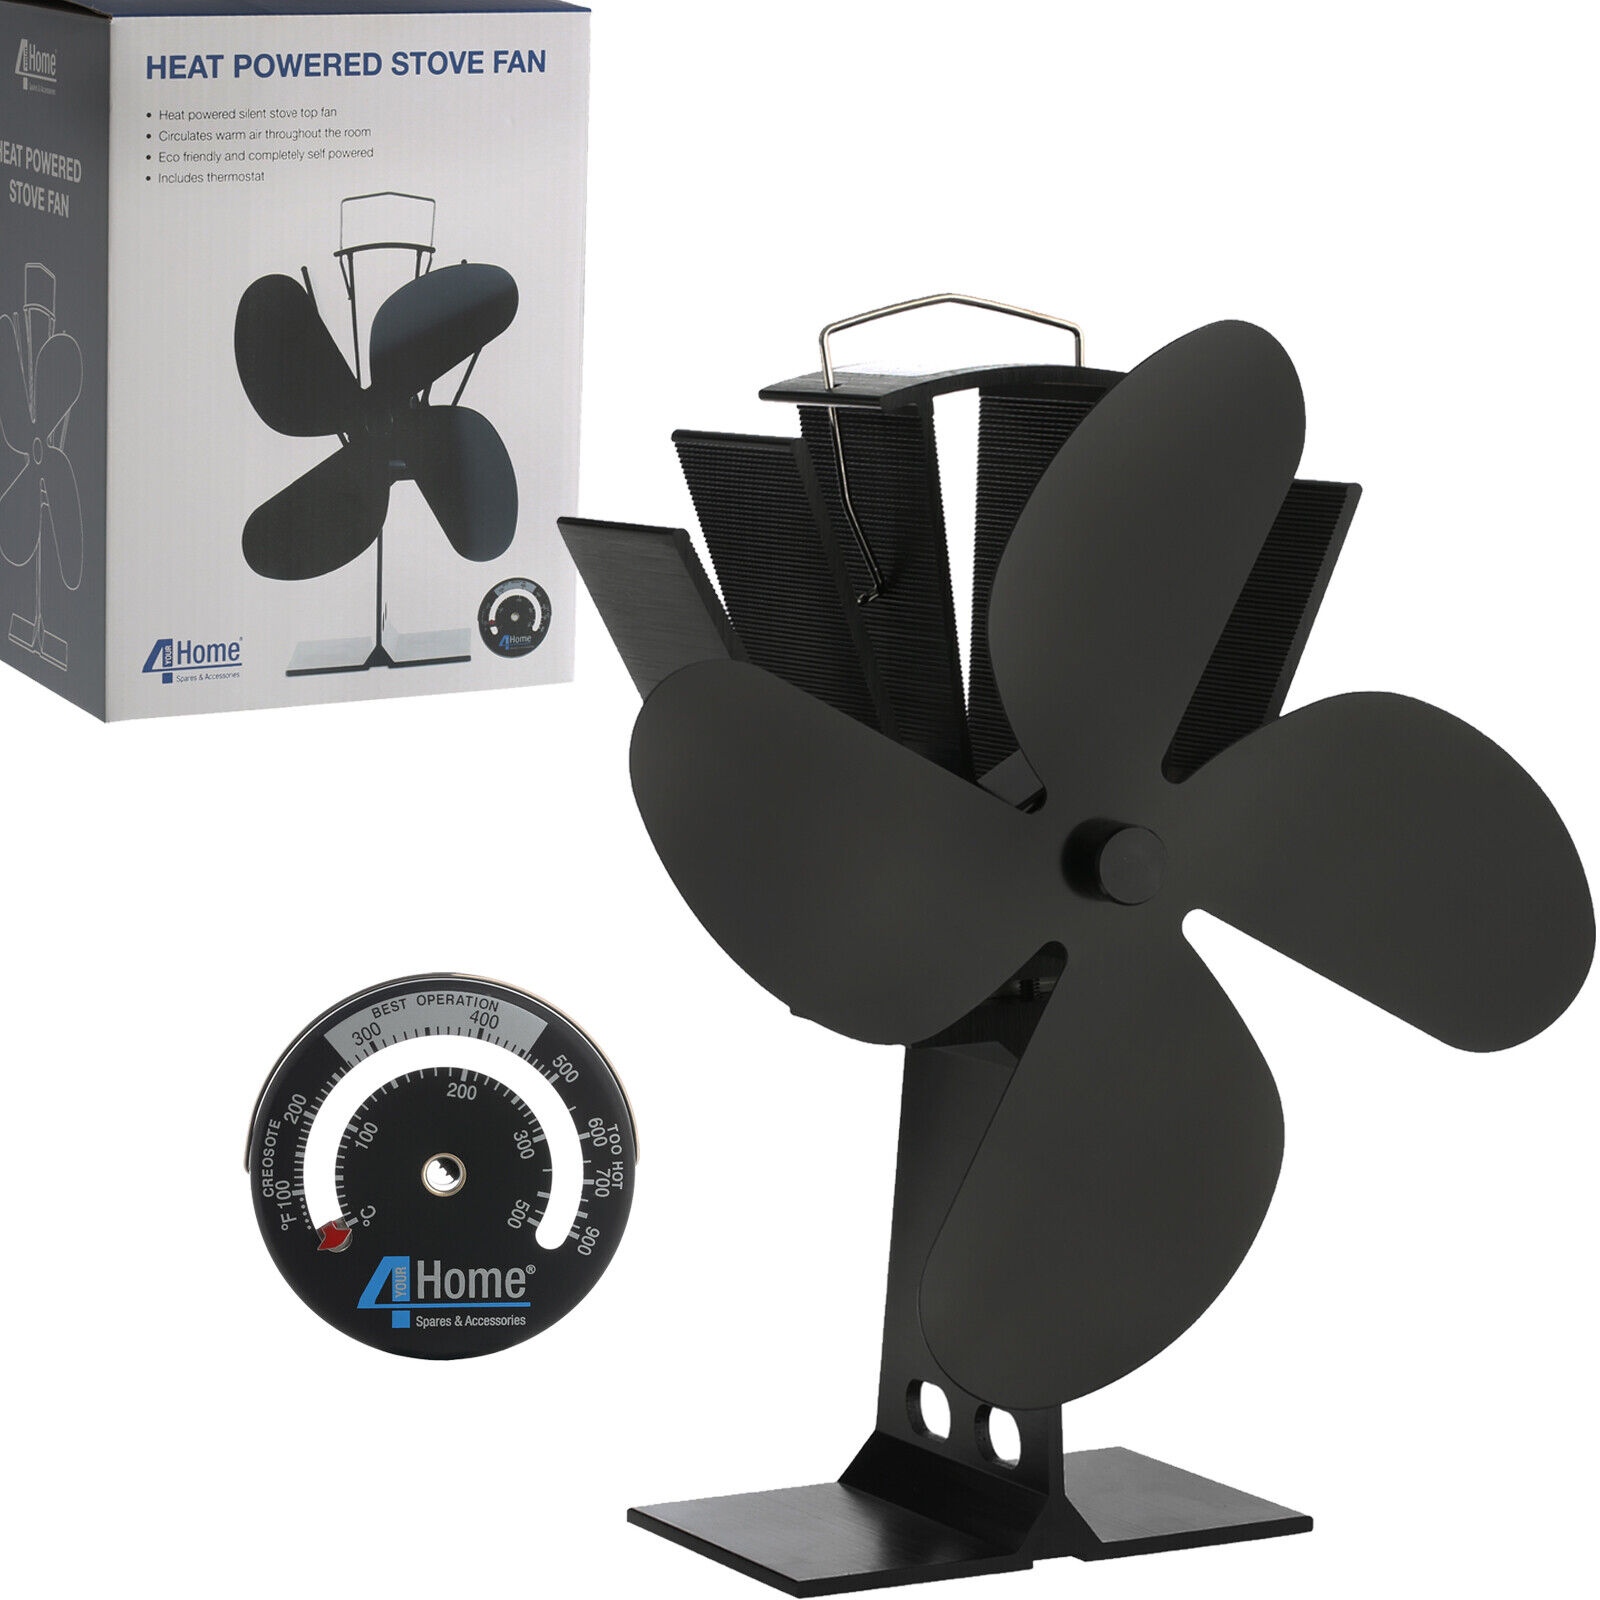 HIGH QUALITY BLACK HEAT POWERED WOOD STOVE FAN